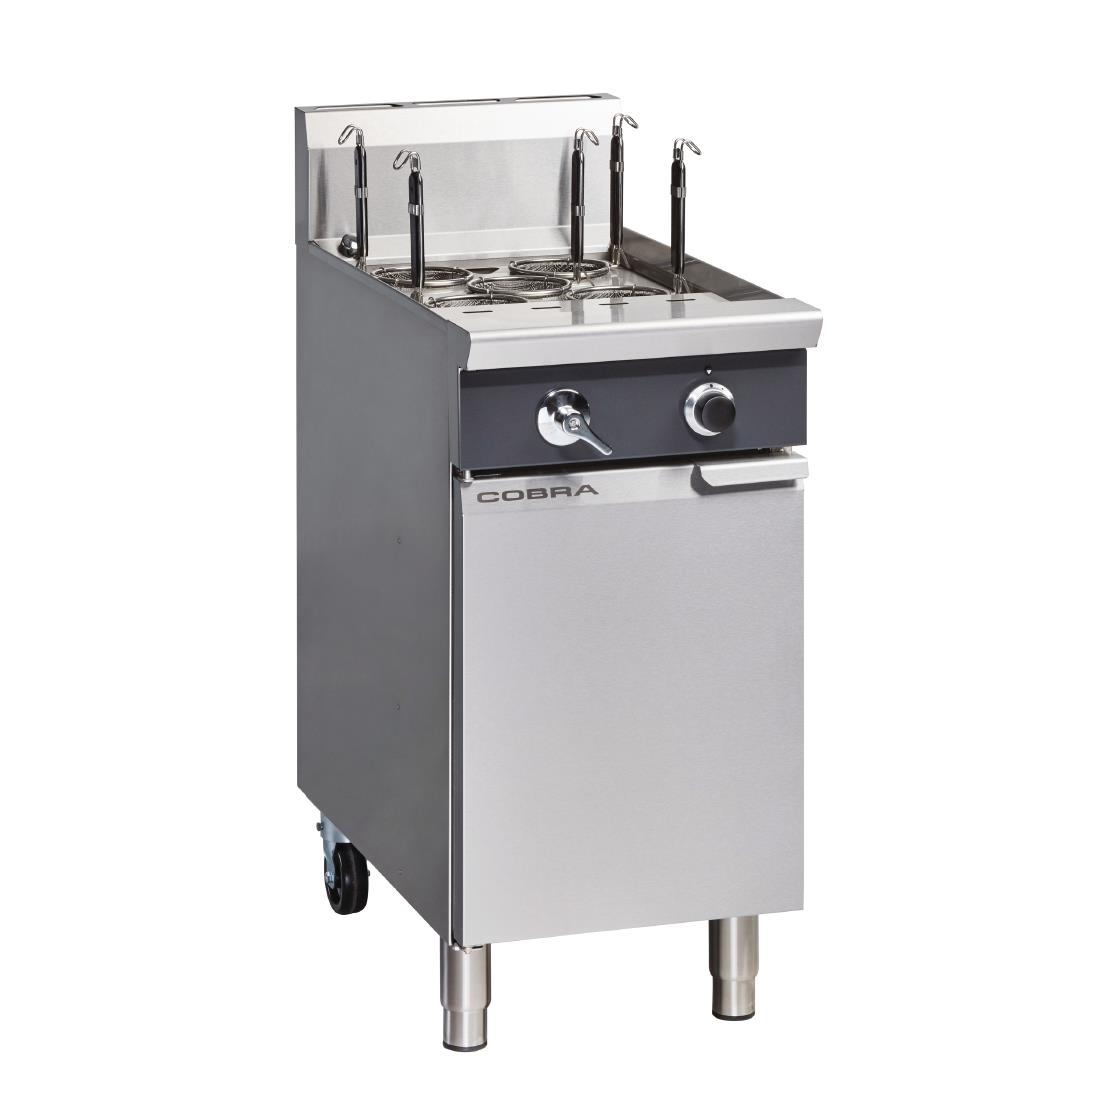 Image of Cobra LPG Noodle Cooker CN4